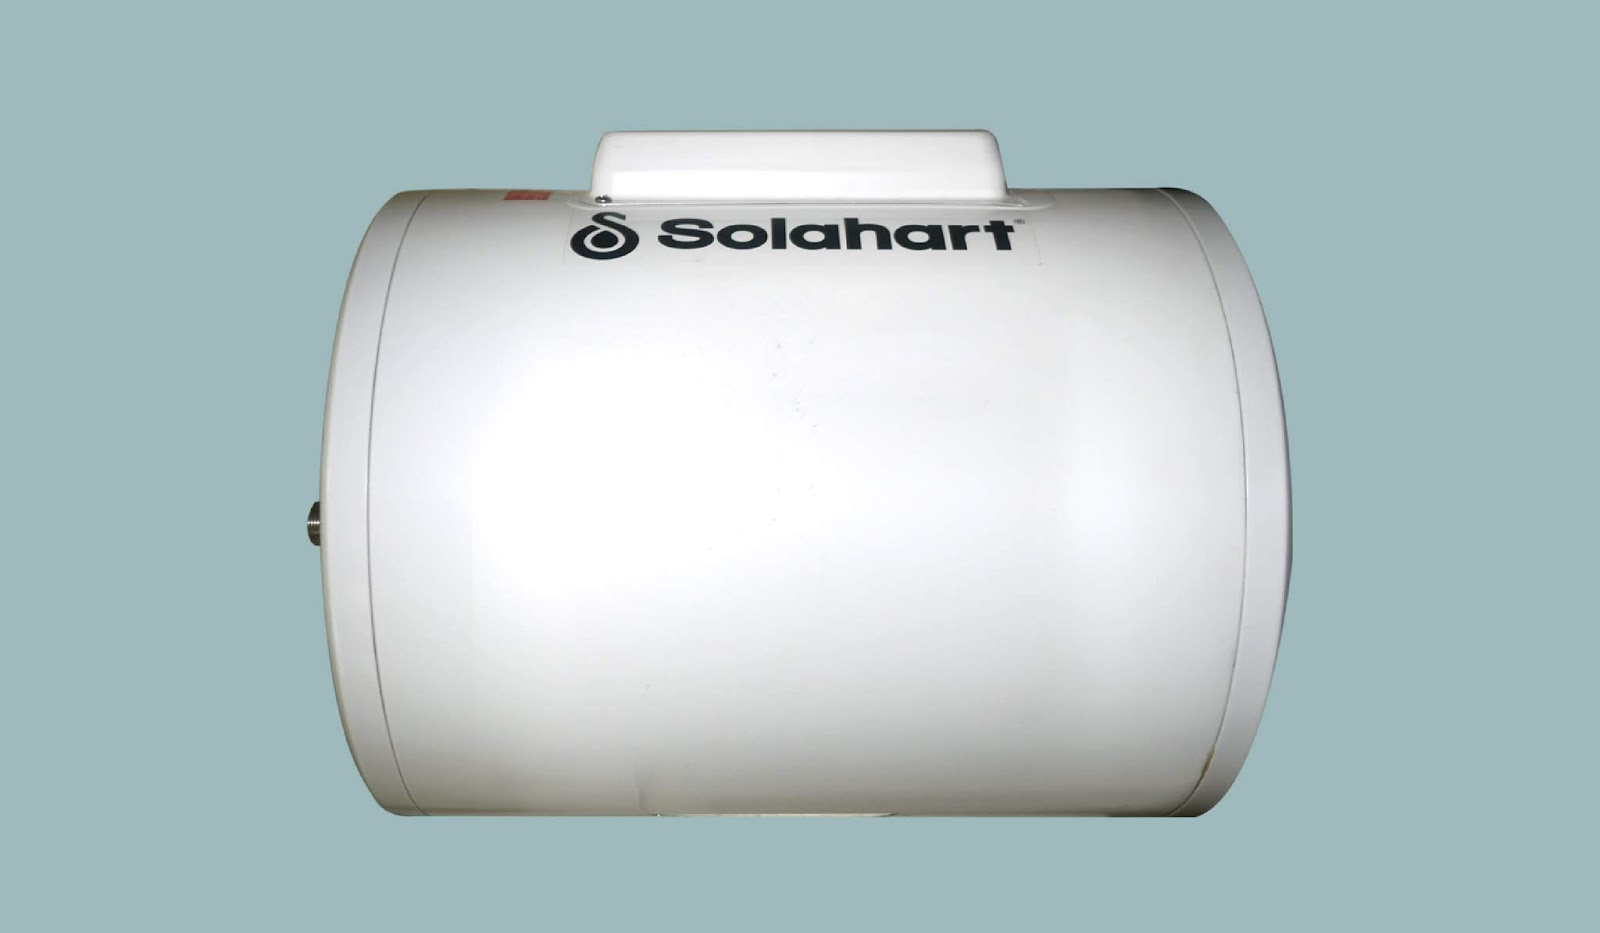 Solahart electric water heater